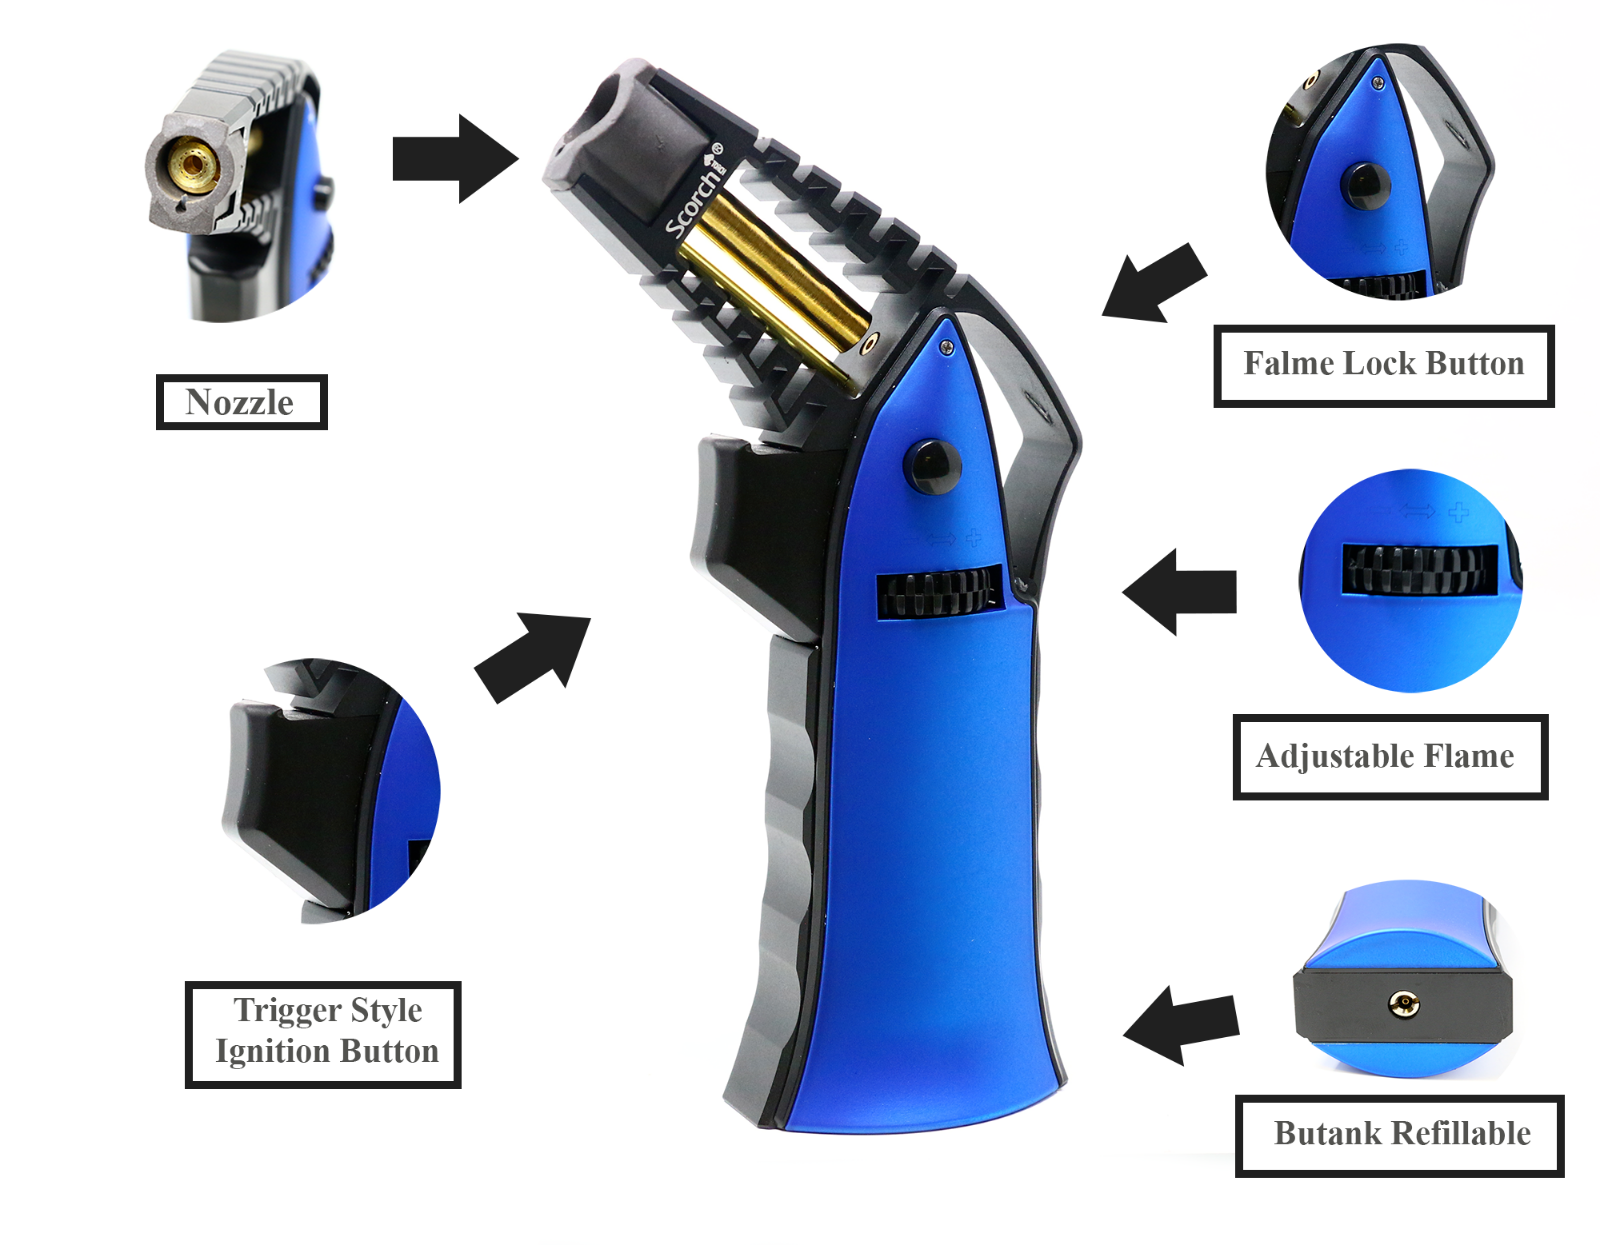 Scorch Torch Handheld Flame Adjustable Butane Refillable Tor